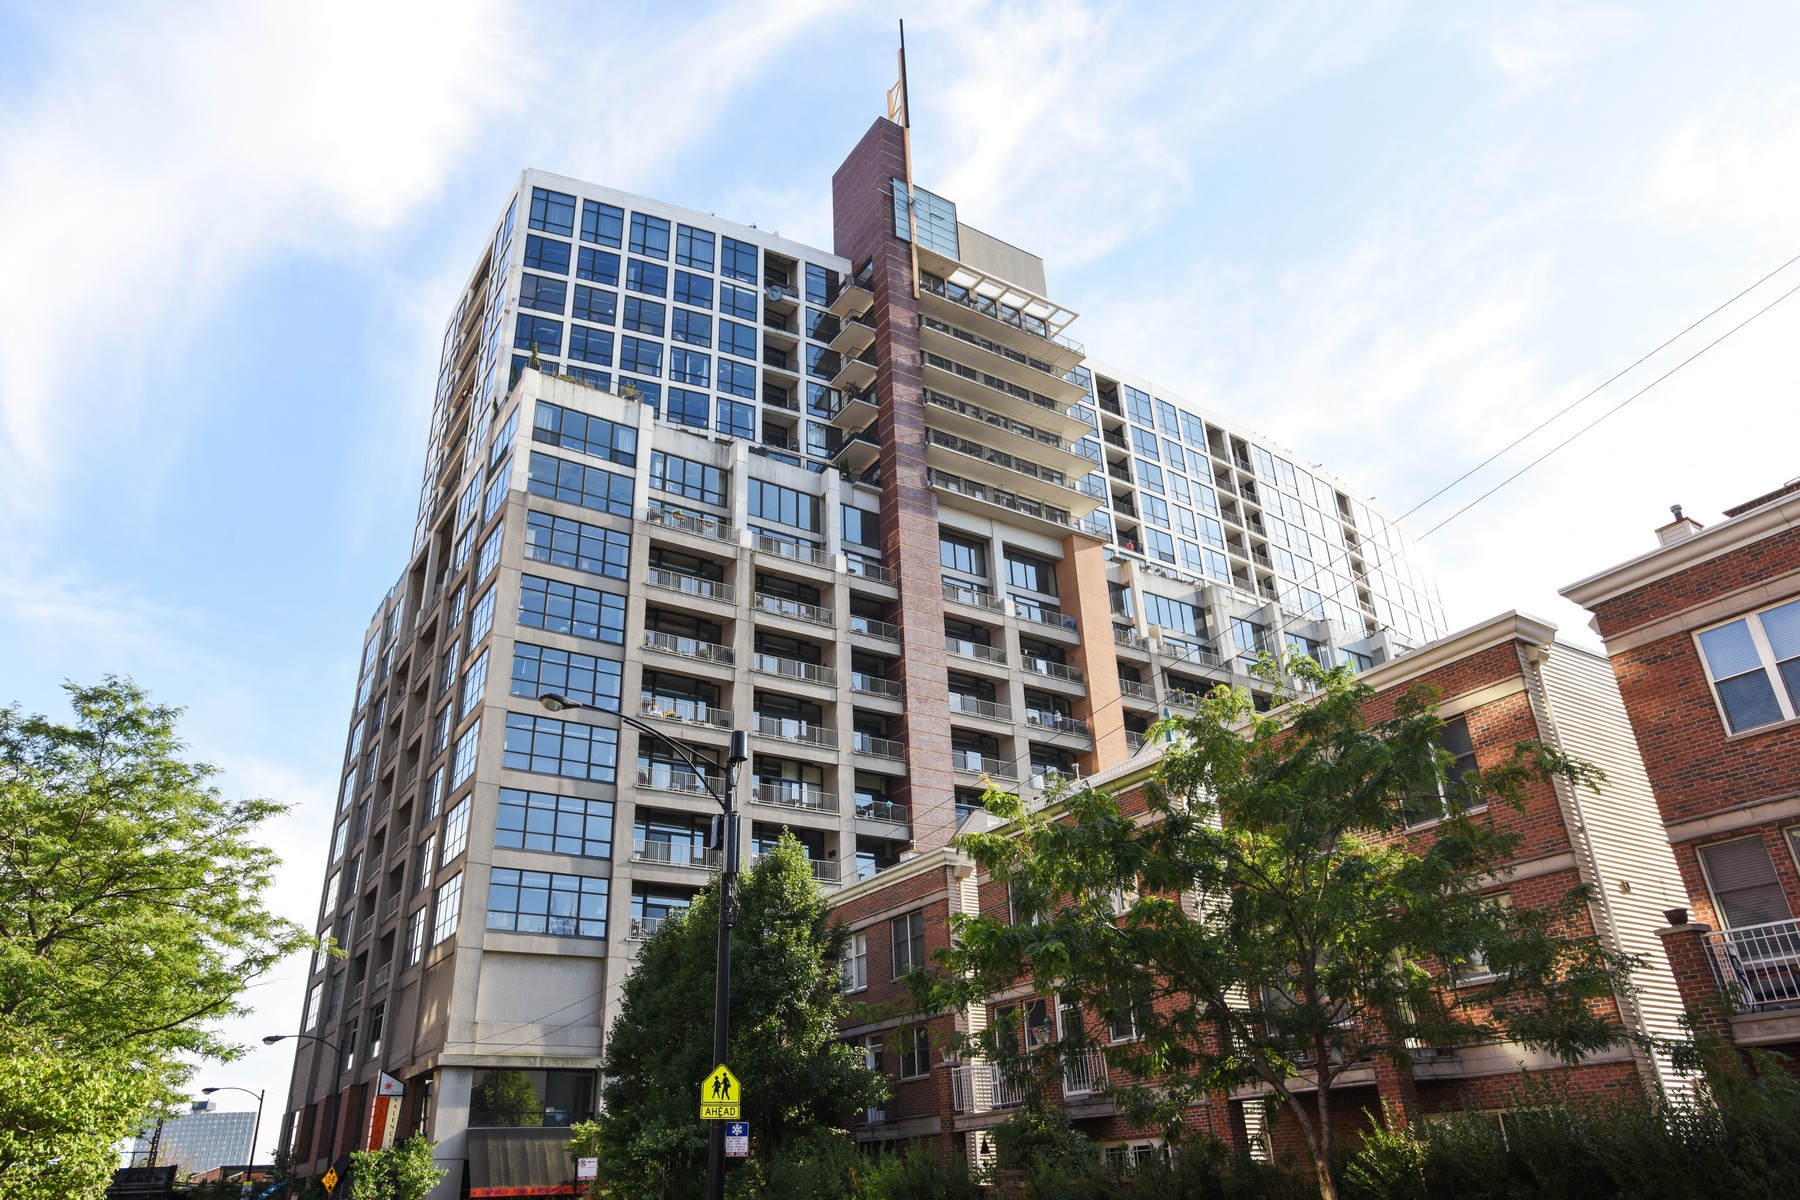 Condominium for Sale at Dearborn Tower 1530 S State Street Unit 1028 Near South Side, Chicago, Illinois, 60605 United States